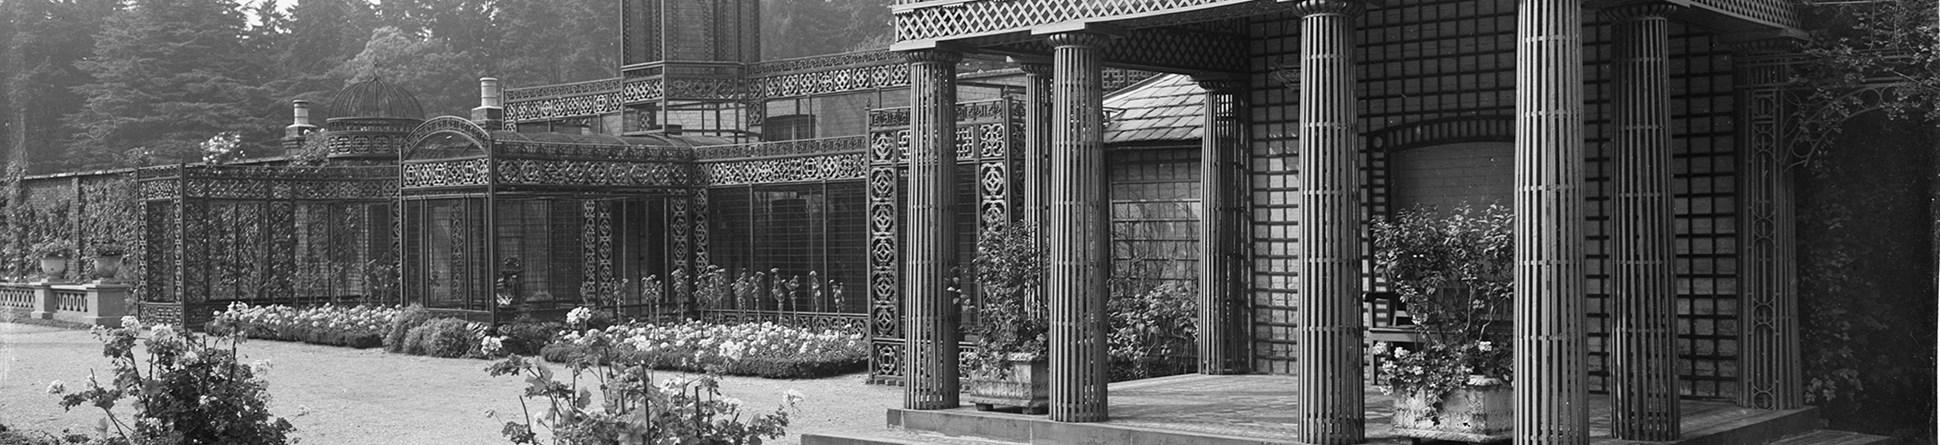 archive black and white photograph of a classical style colonnaded garden building and an elaborate wrought-iron aviary